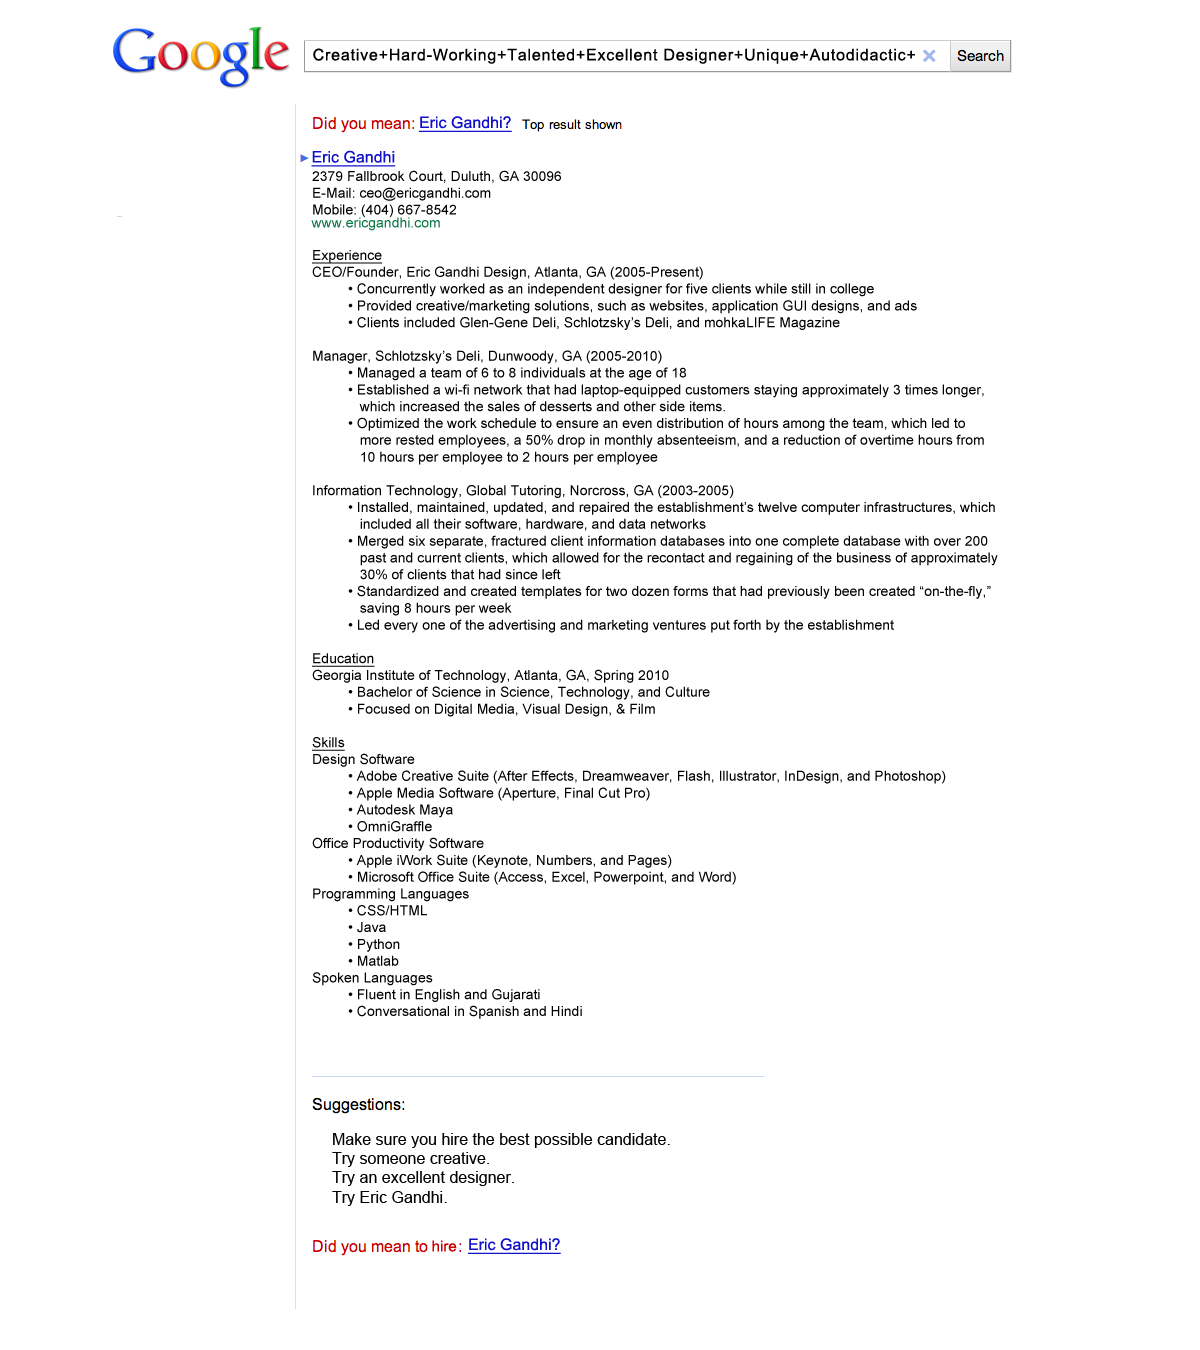 A Google Themed Resume Got Eric Gandhi An Interview With